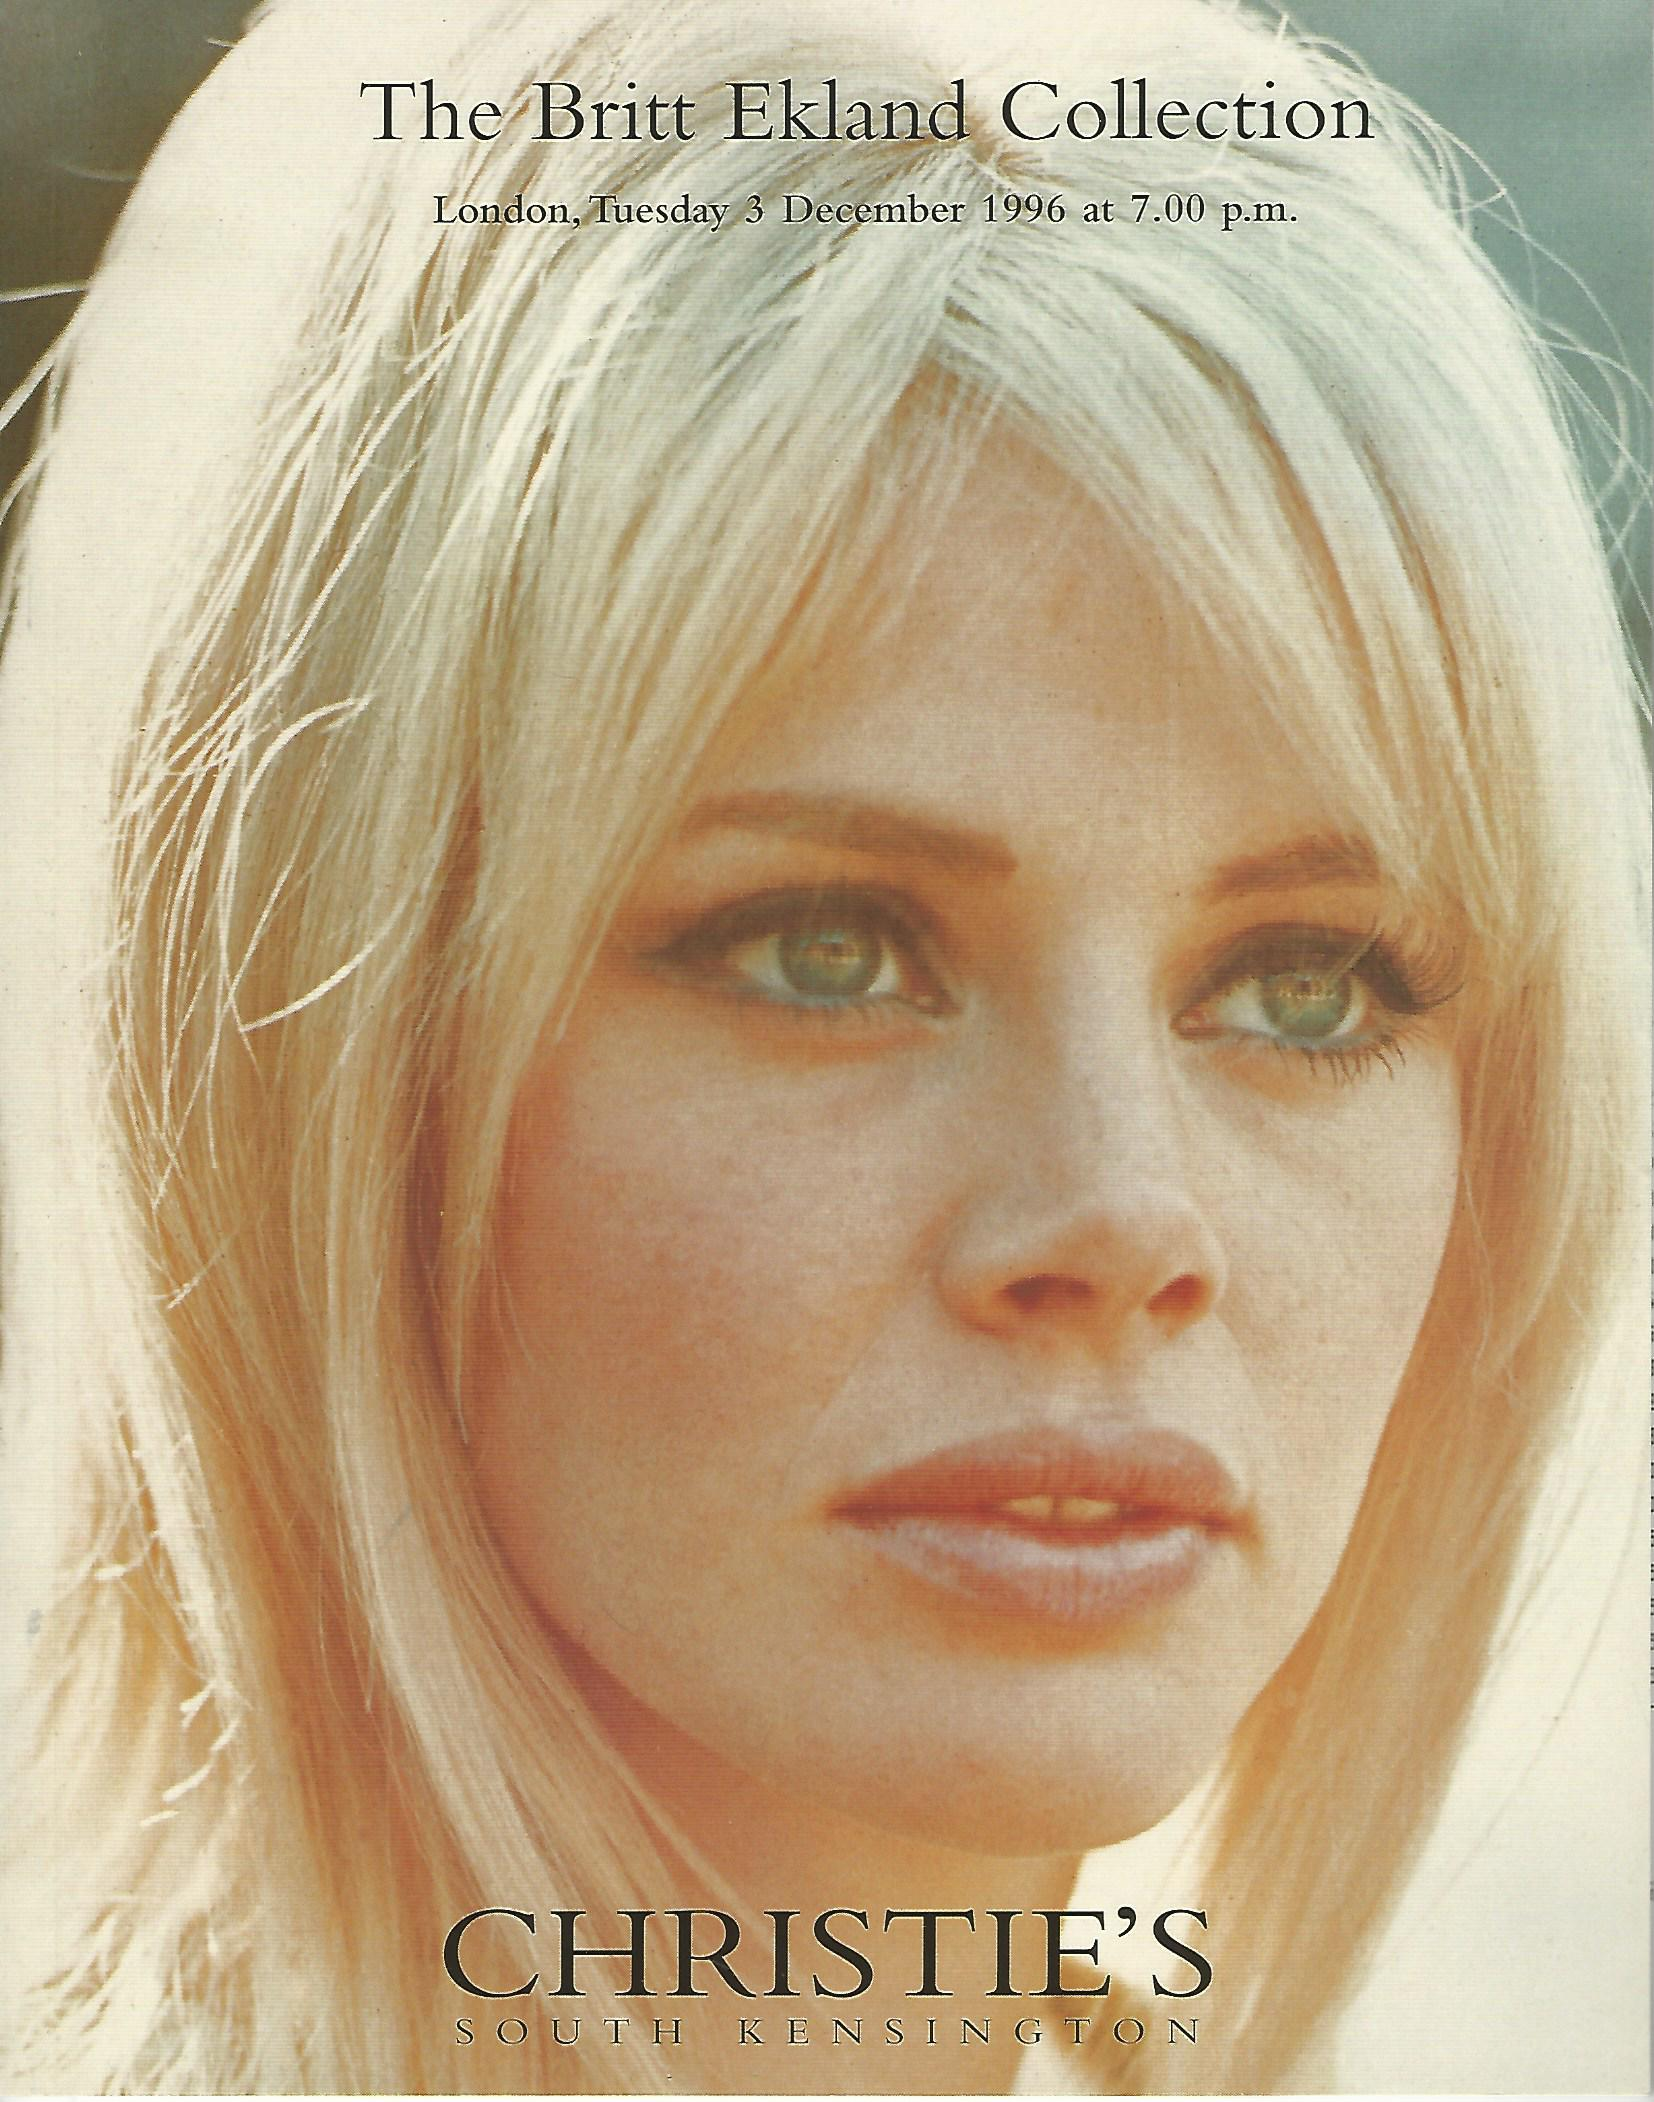 Image for Christie's: The Britt Ekland Collection, London, Tuesday 3 December 1996.